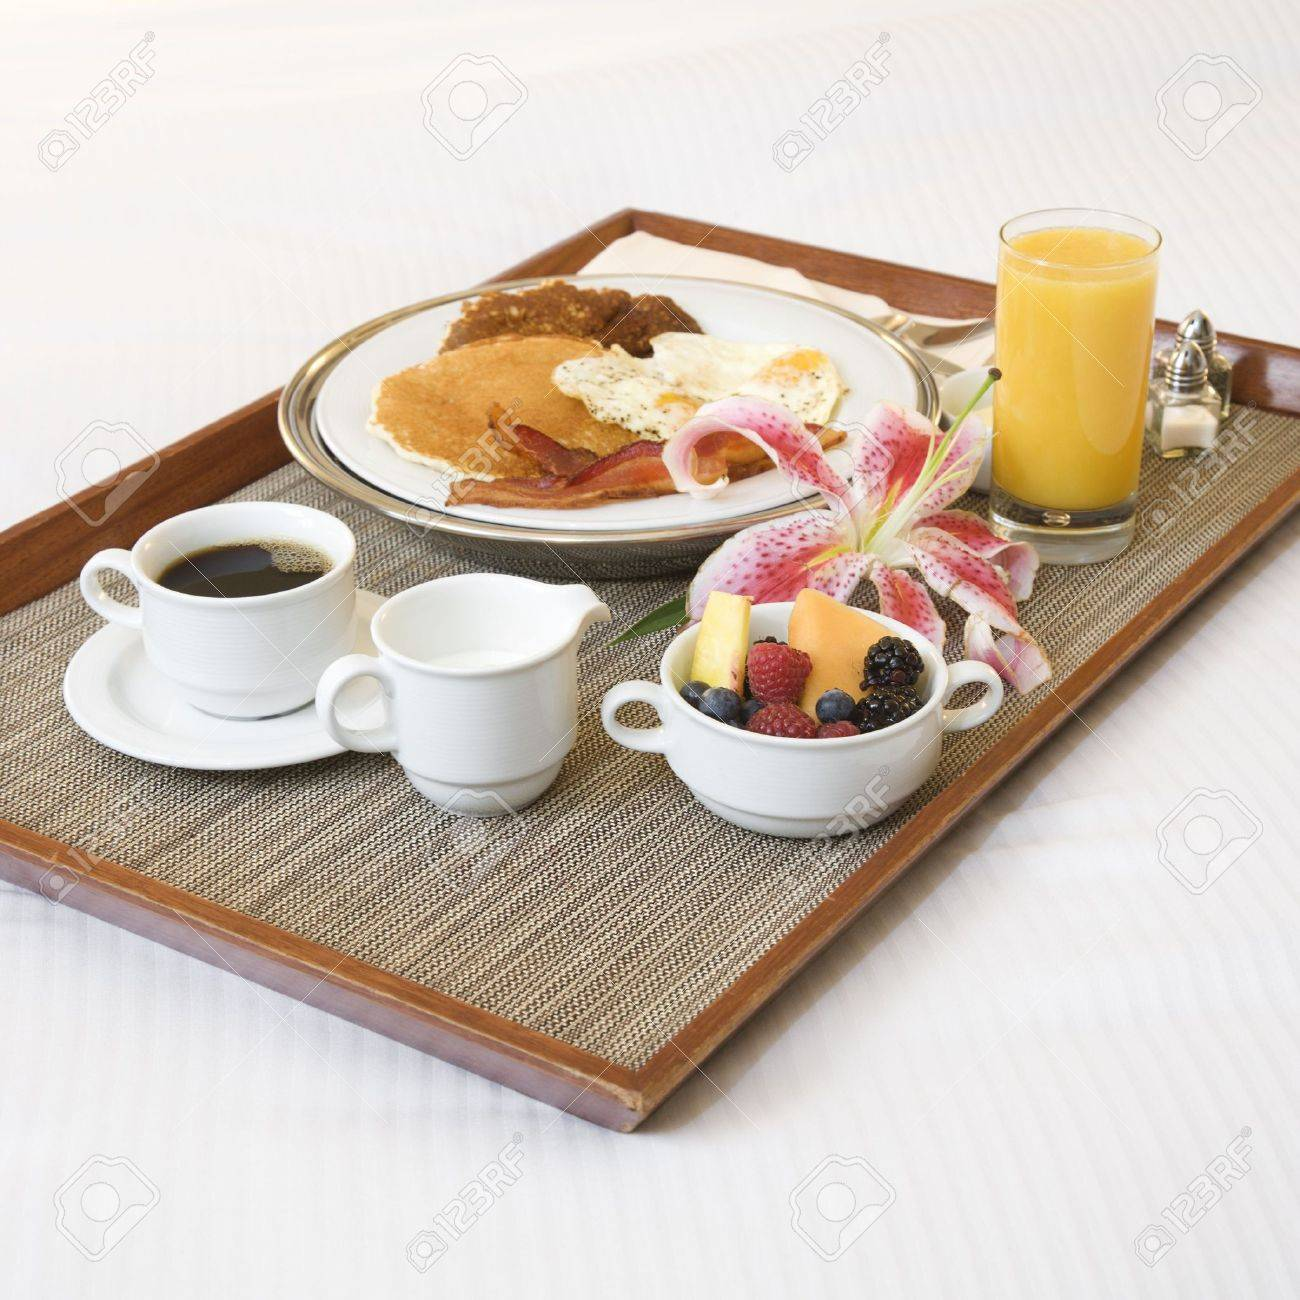 Close-up of breakfast tray laying on white bed. Stock Photo - 2555816